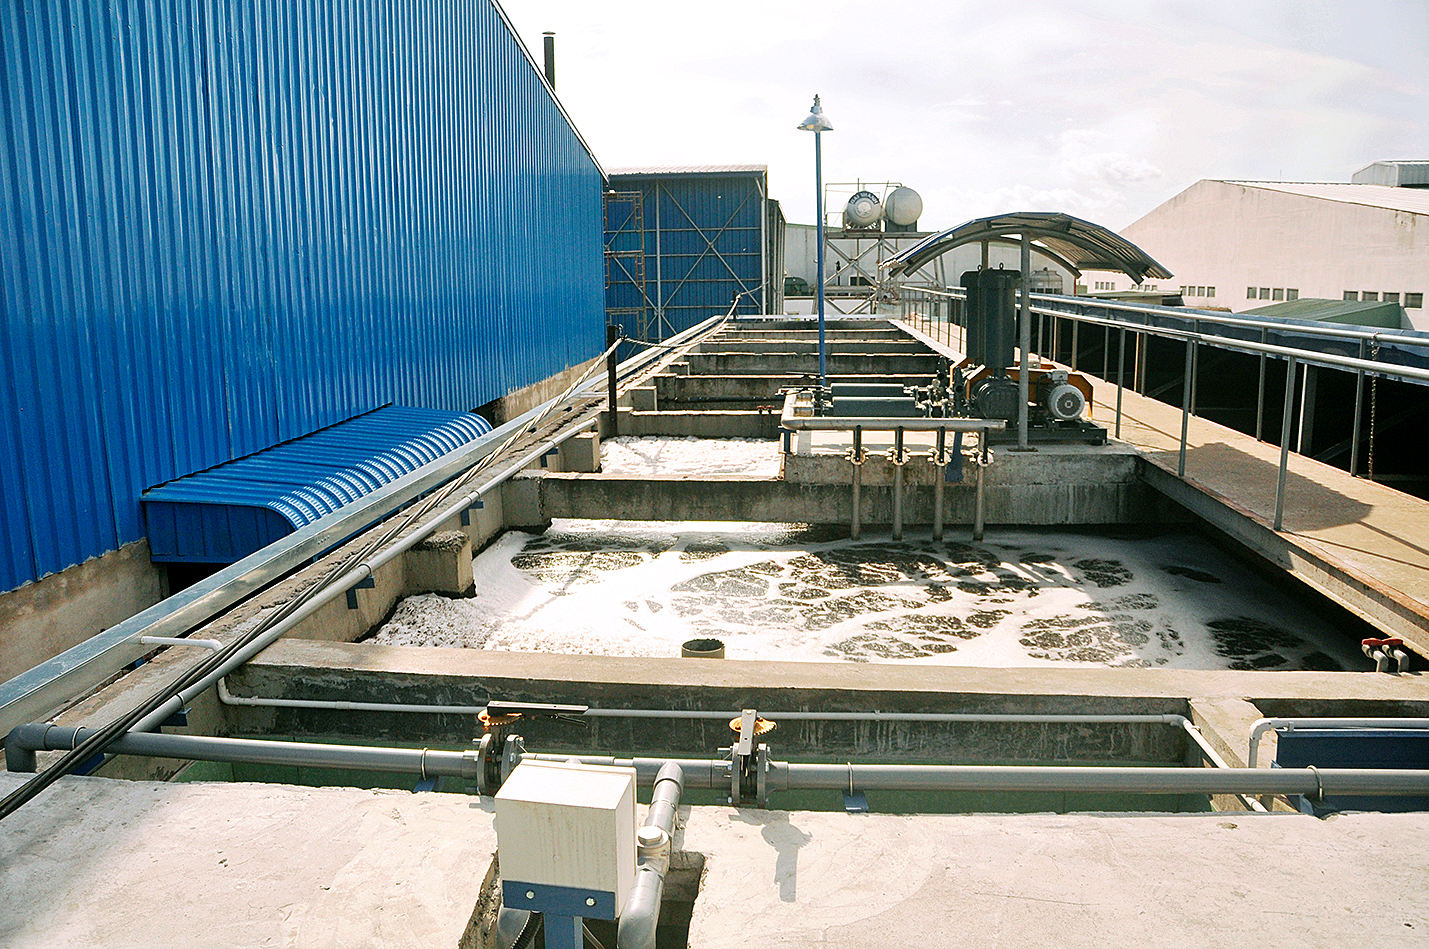 Water Filtration Portion of the Dyeing Facility